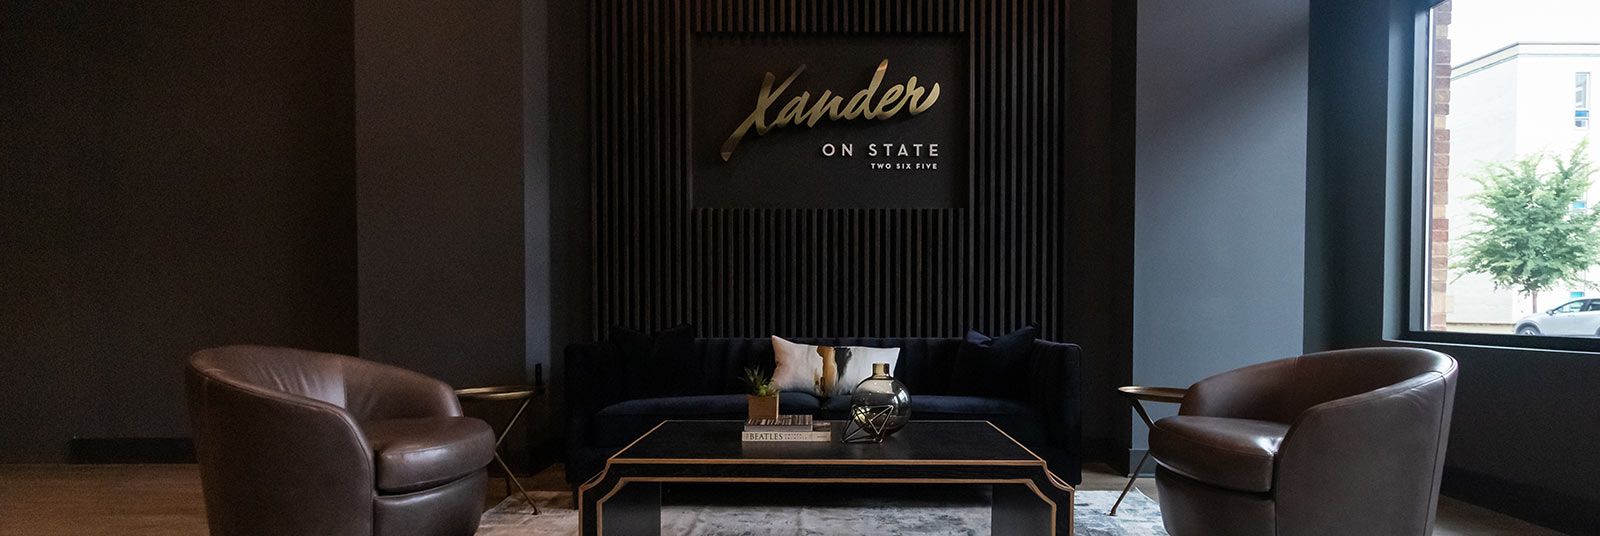 The lobby at Xander on State in Columbus, Ohio.